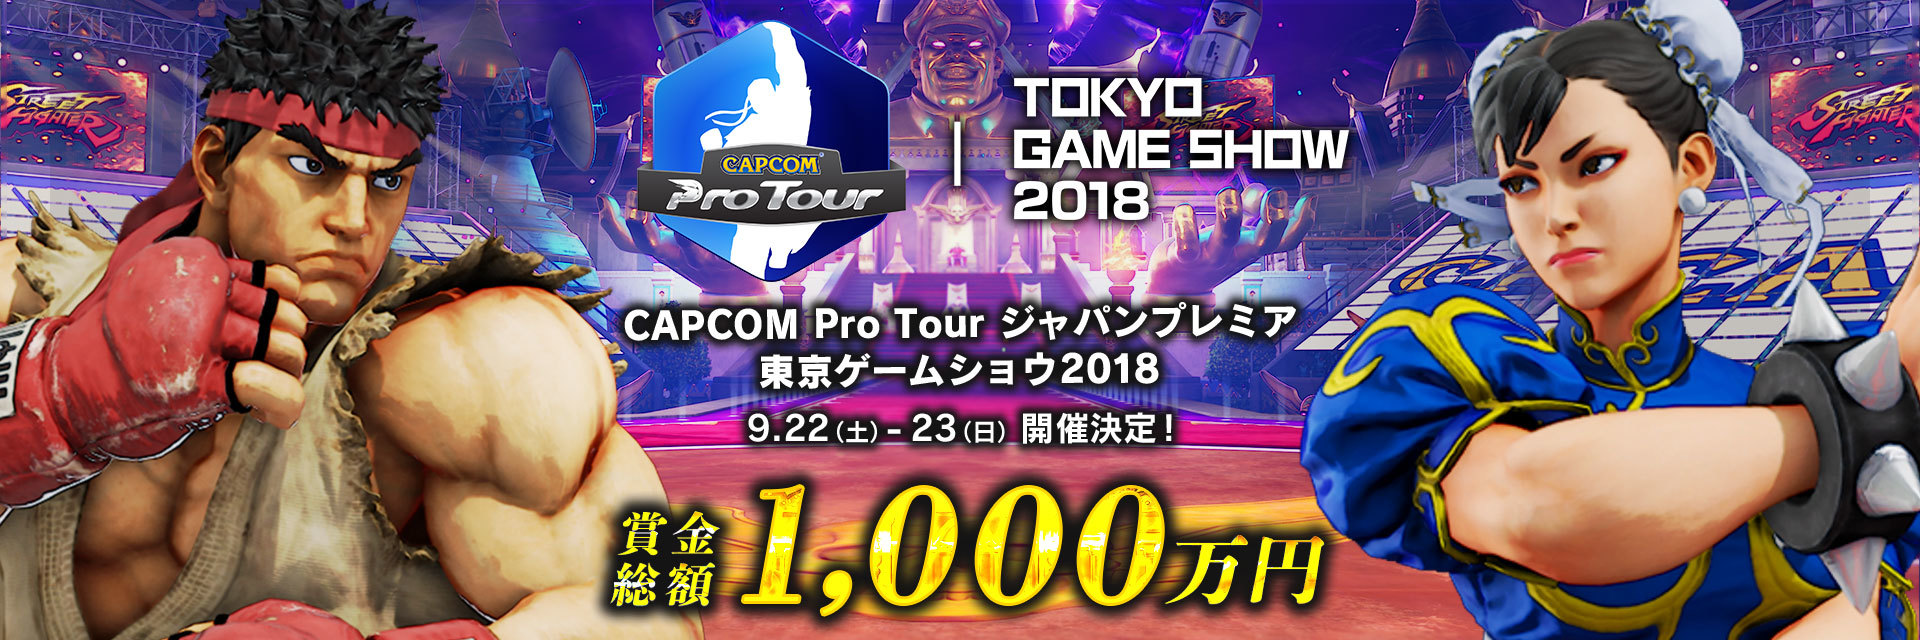 「CAPCOM Pro Tour ジャパンプレミア」バナー (c)CAPCOM U.S.A., INC. 2016, 2018 ALL RIGHTS RESERVED.